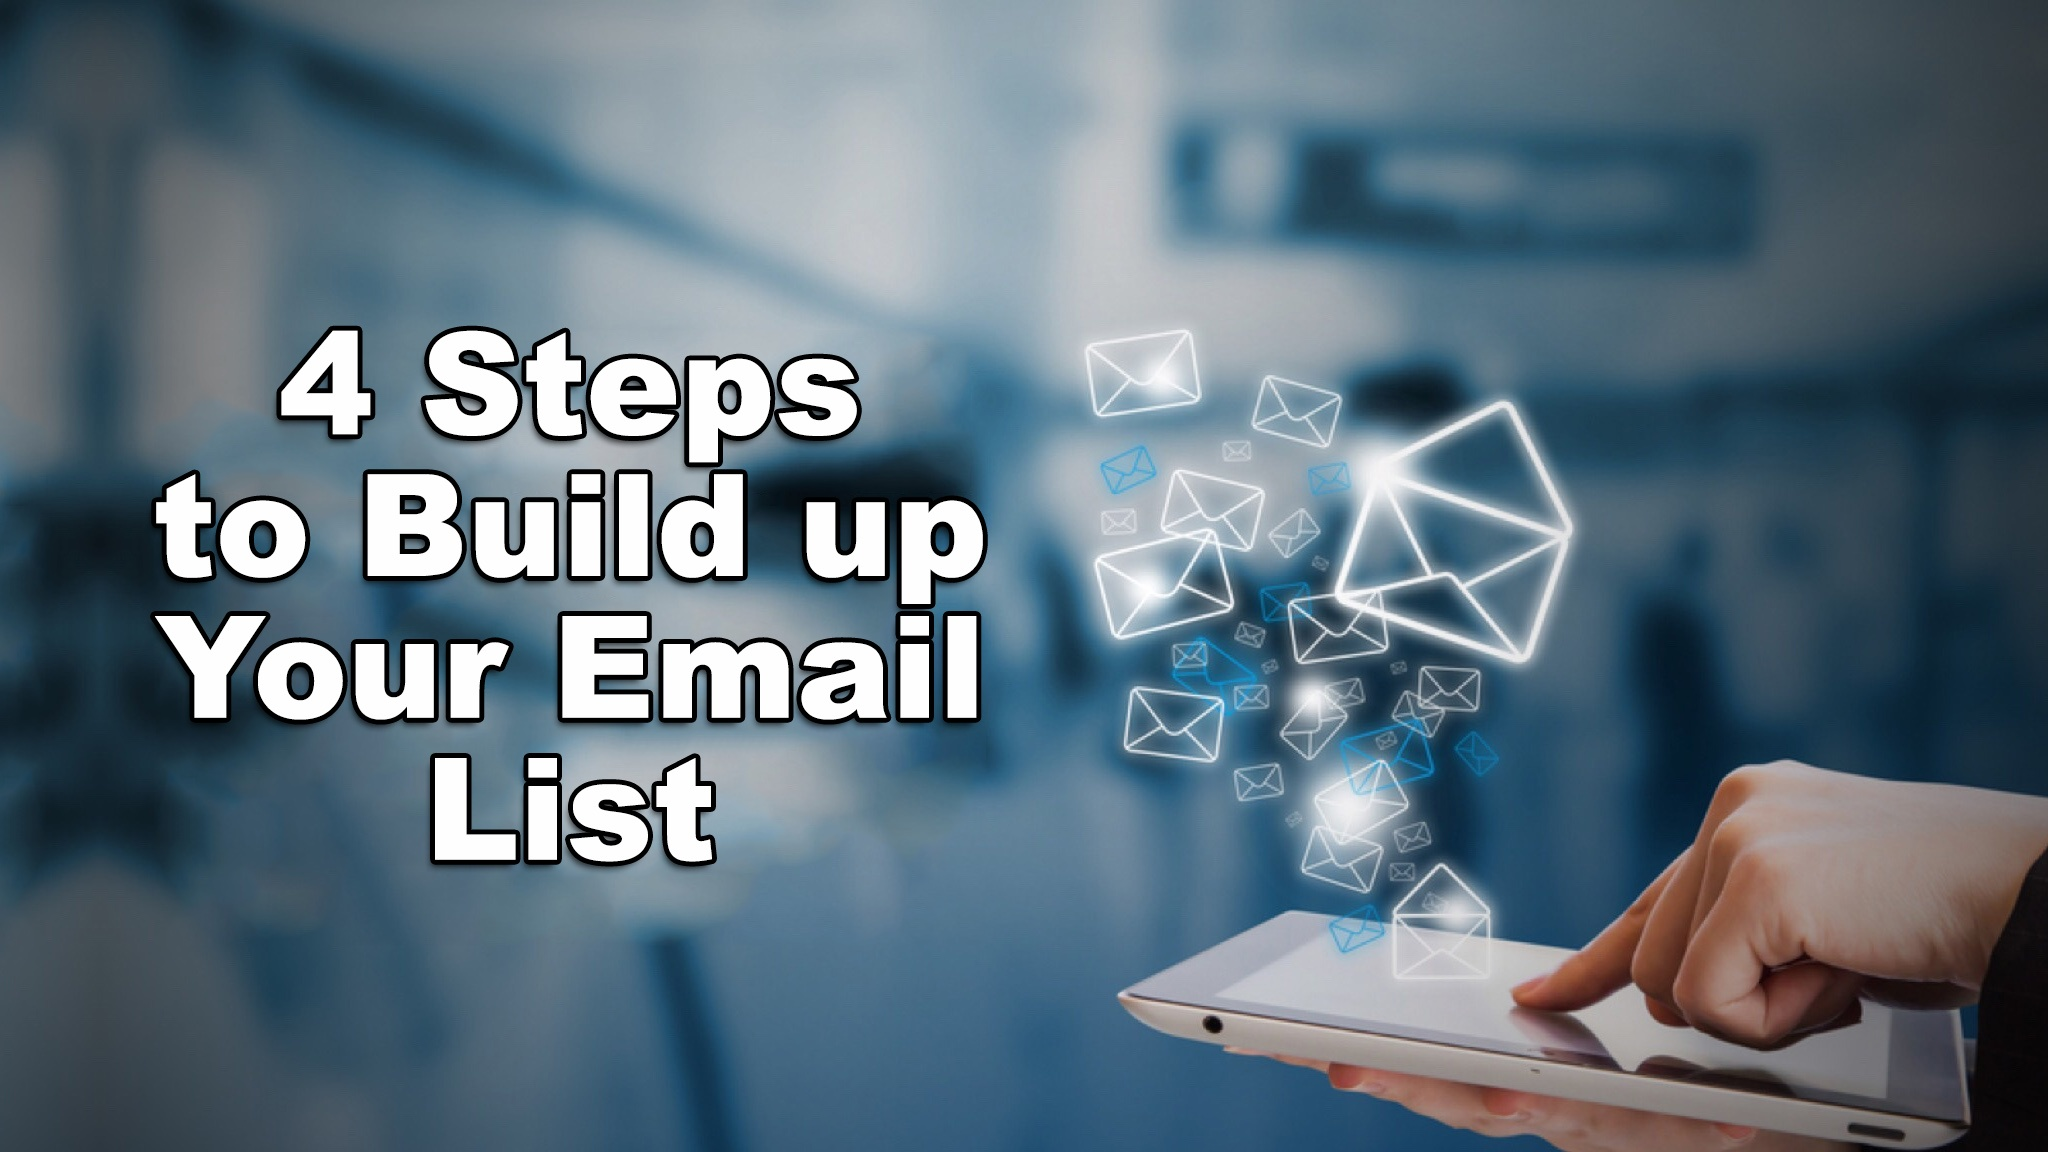 4 Steps to Build up Your Email List